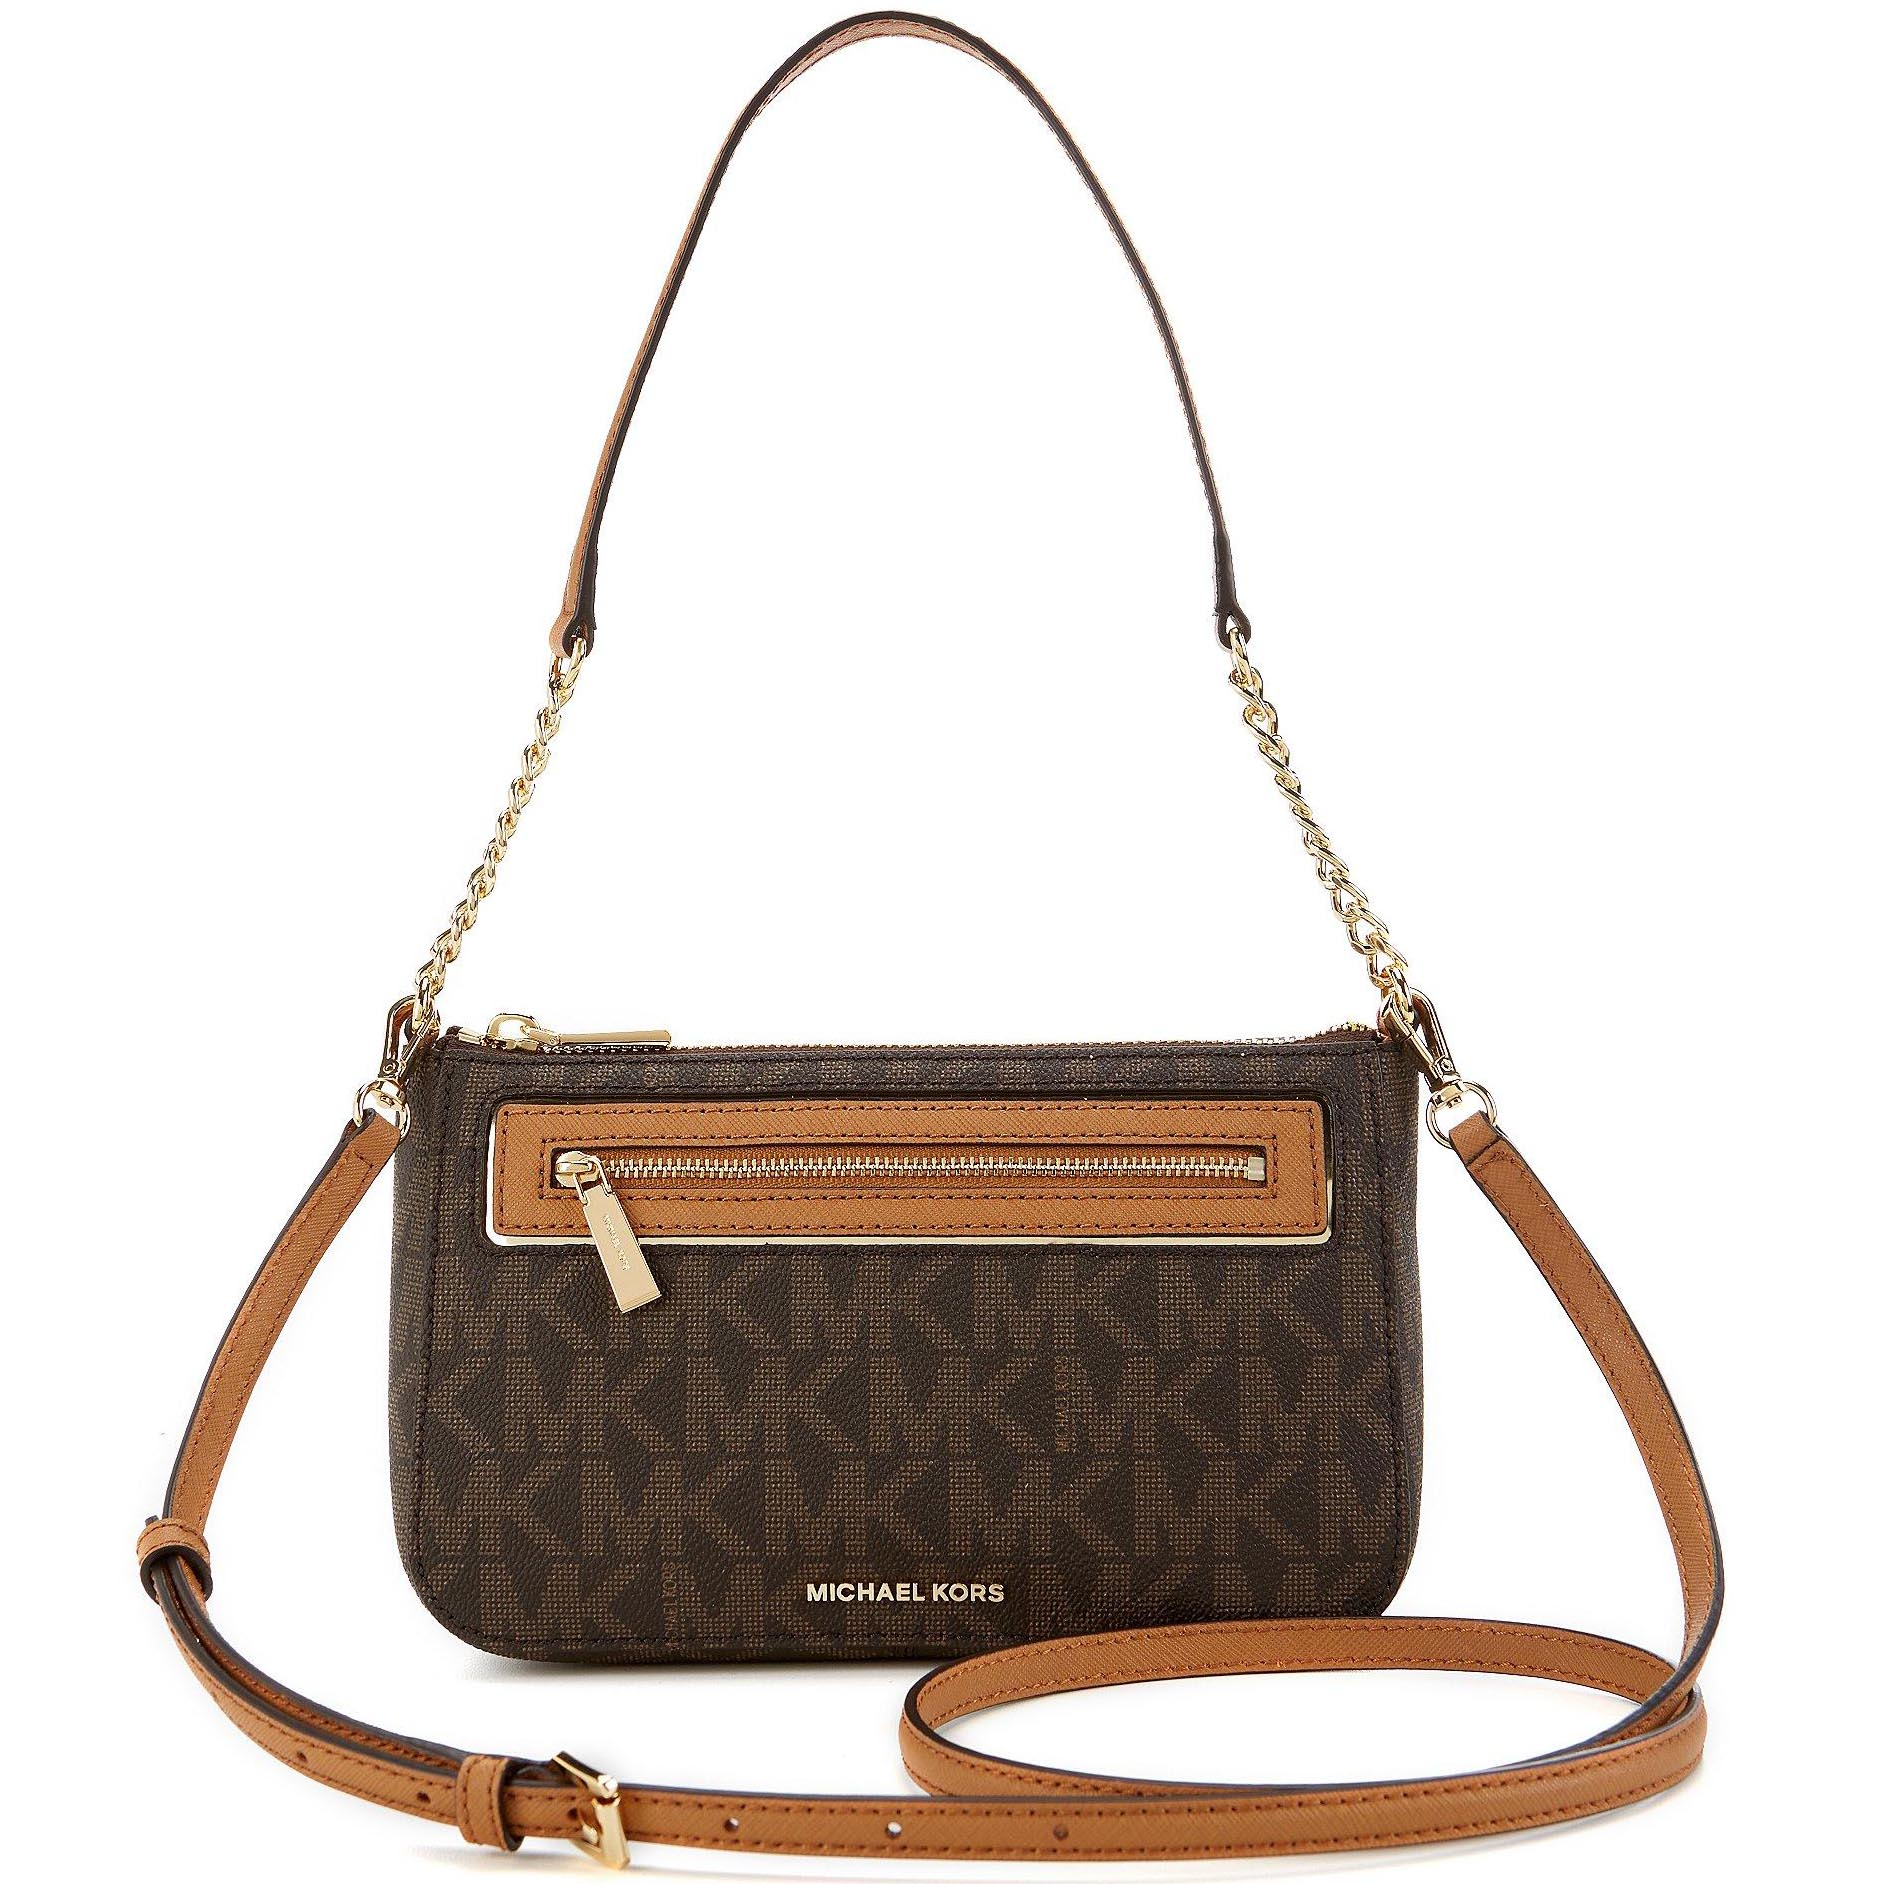 Michael Kors Frame Out Item Medium Convertible Pouchette Crossbody Brown # 32H6GFJU2B